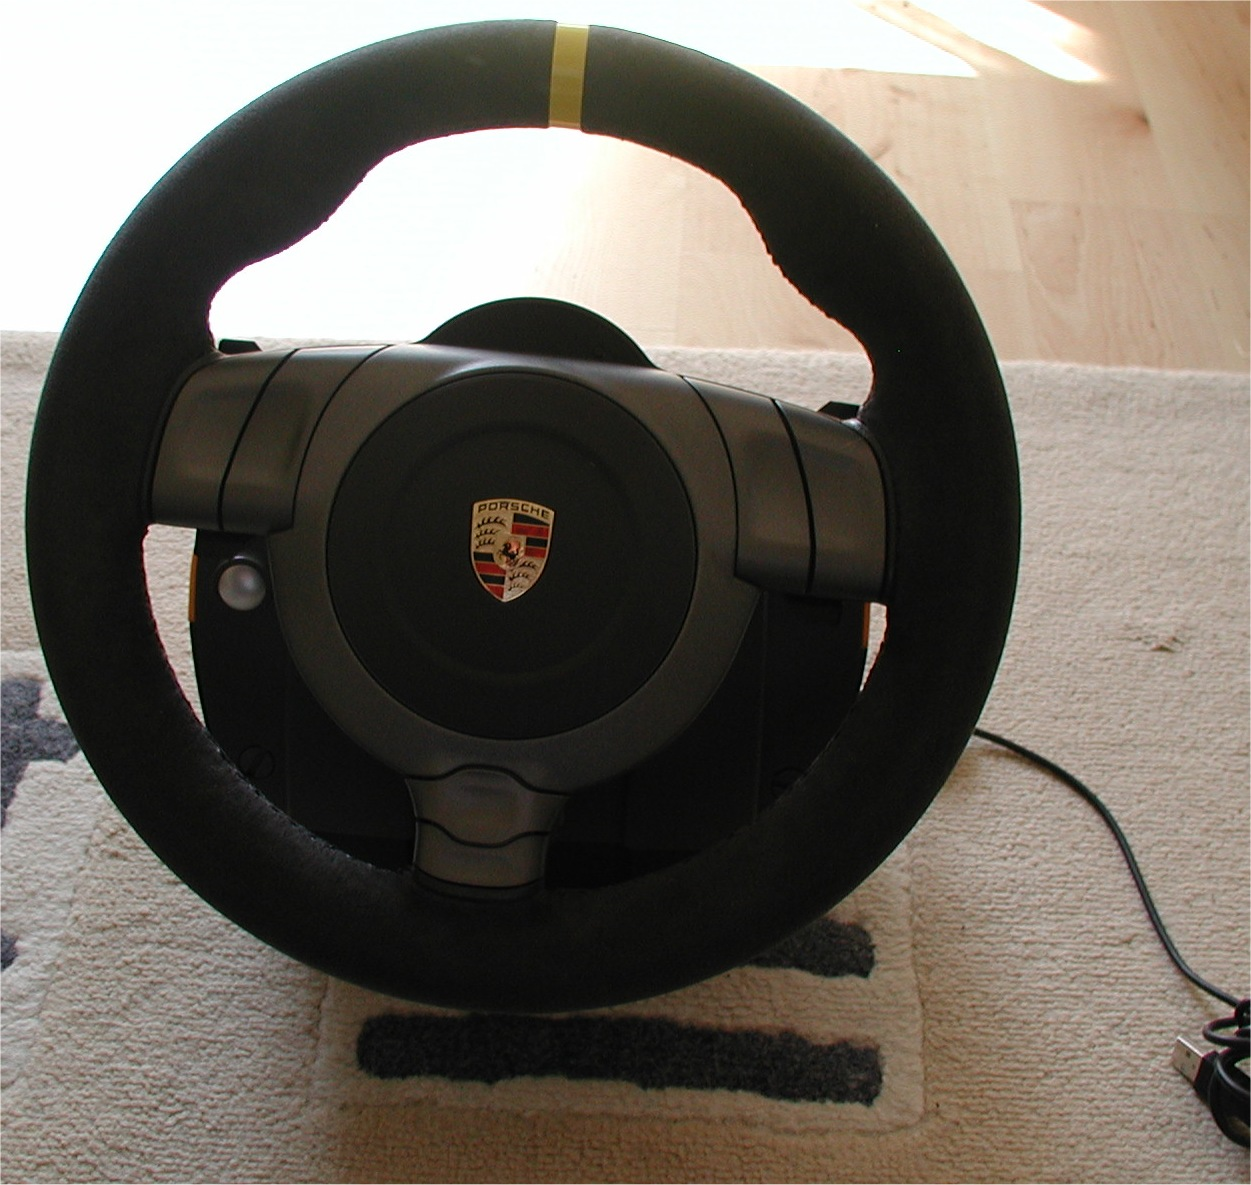 fanatec porsche 911 gt3 rs wheel review sim racing news. Black Bedroom Furniture Sets. Home Design Ideas